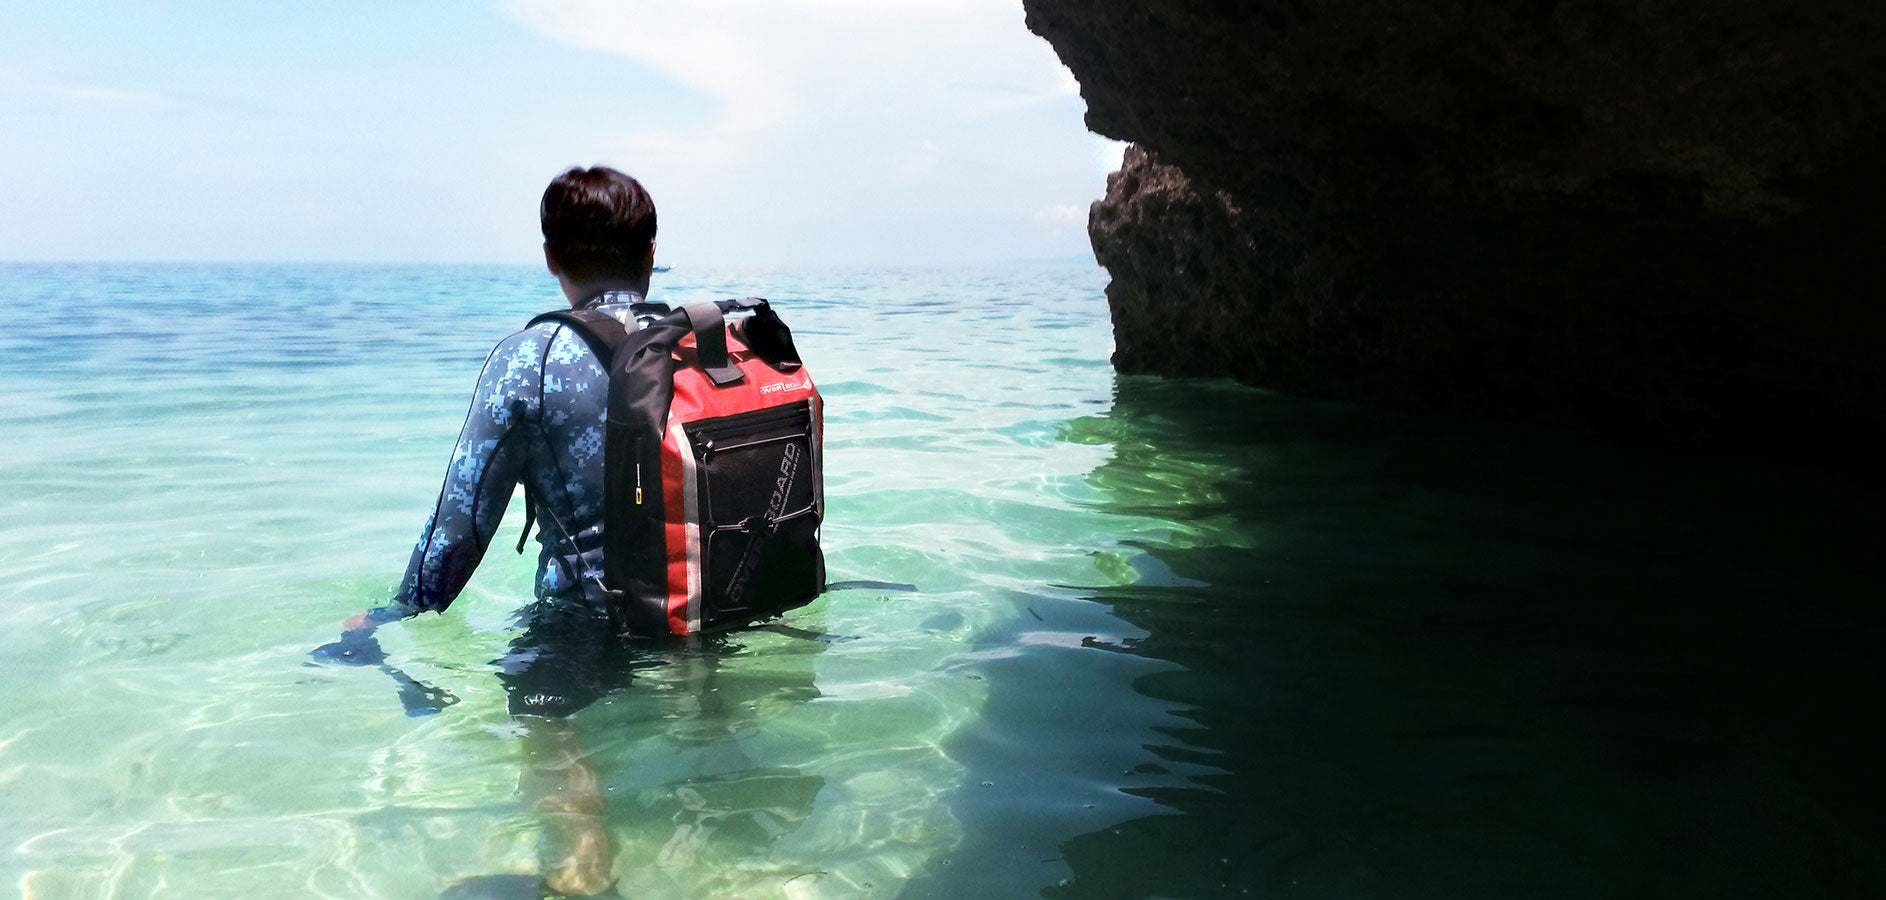 Waterproof Bags | Waterproof Cases | High-Quality Dry Bags | OverBoard